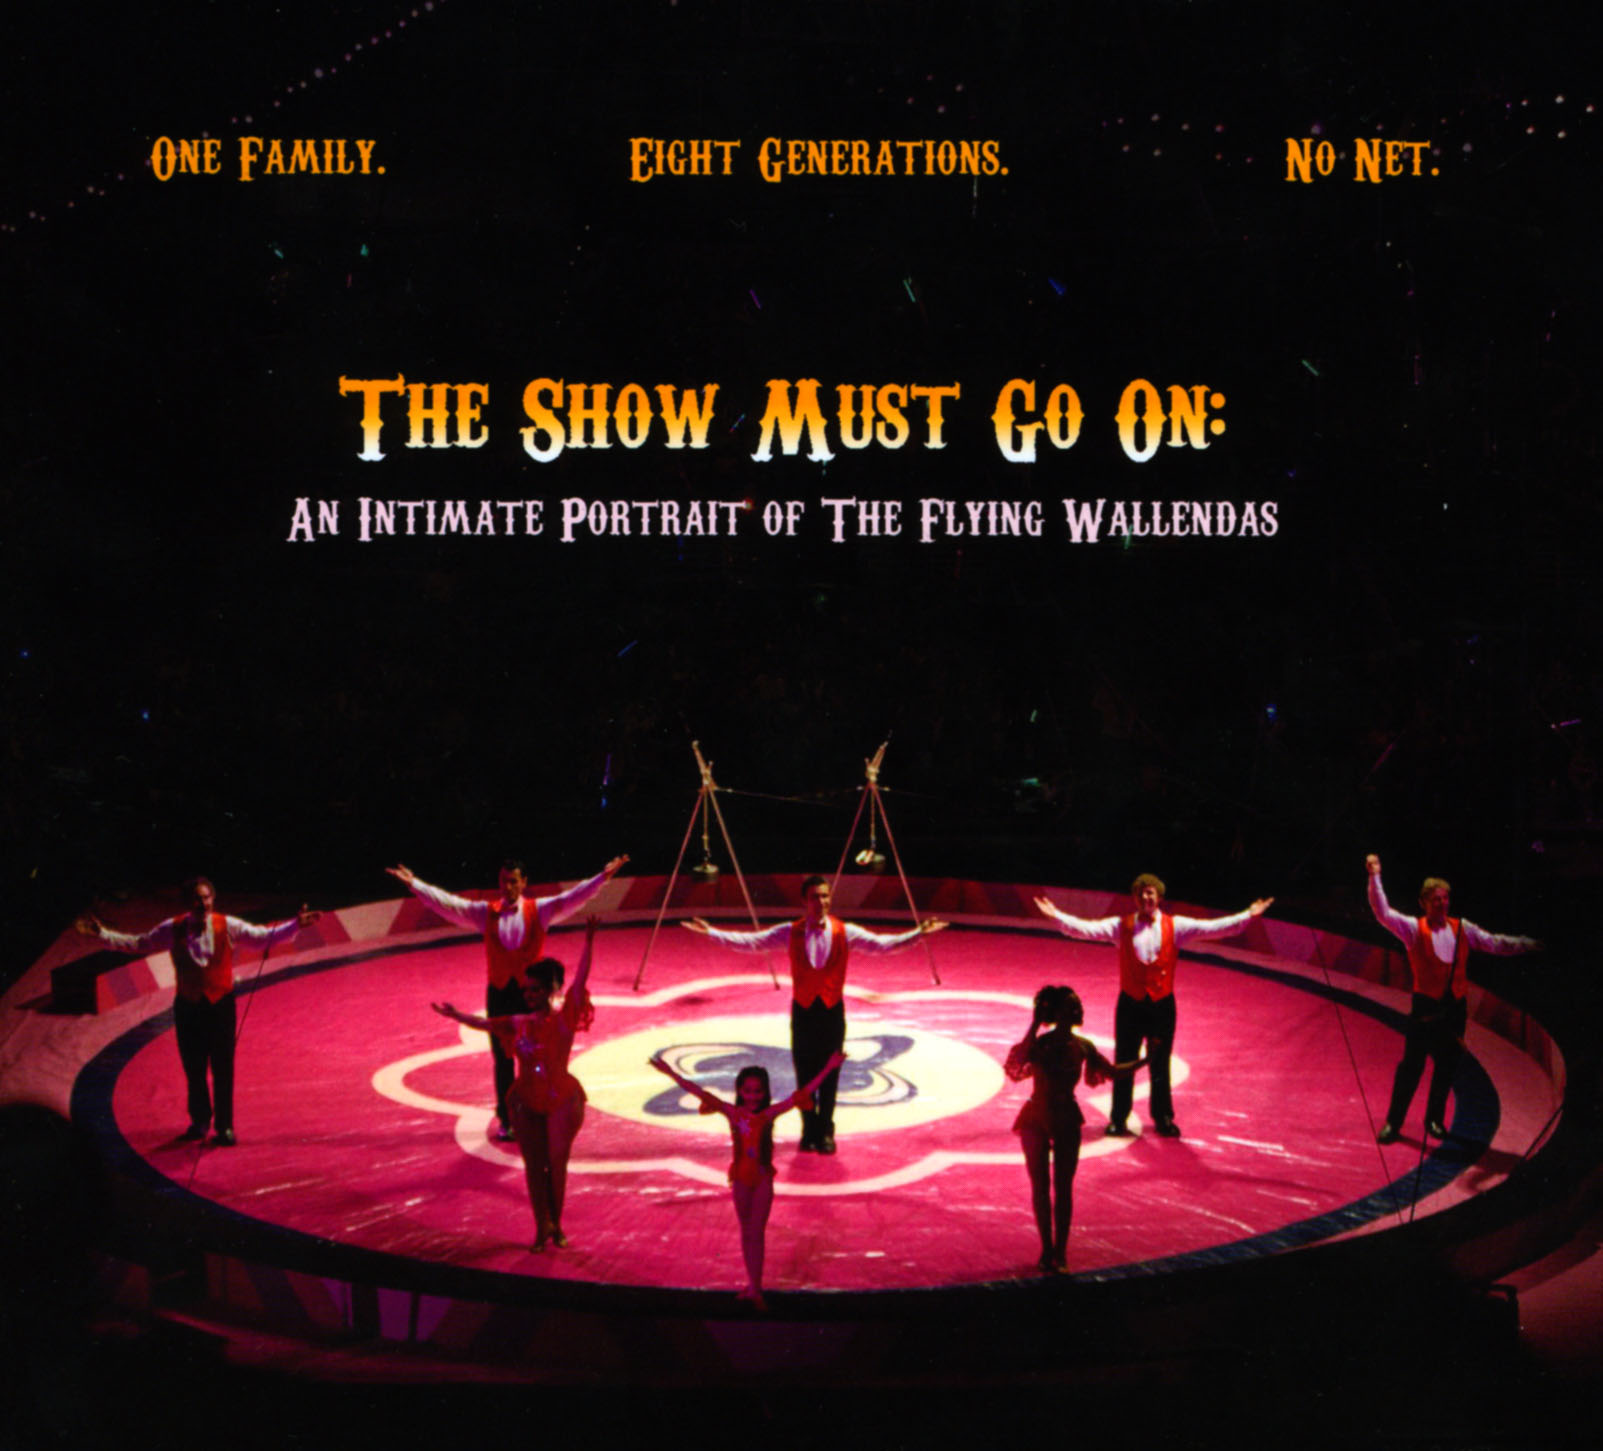 The Show Must Go On: An Intimate Portrait of the Flying Wallendas